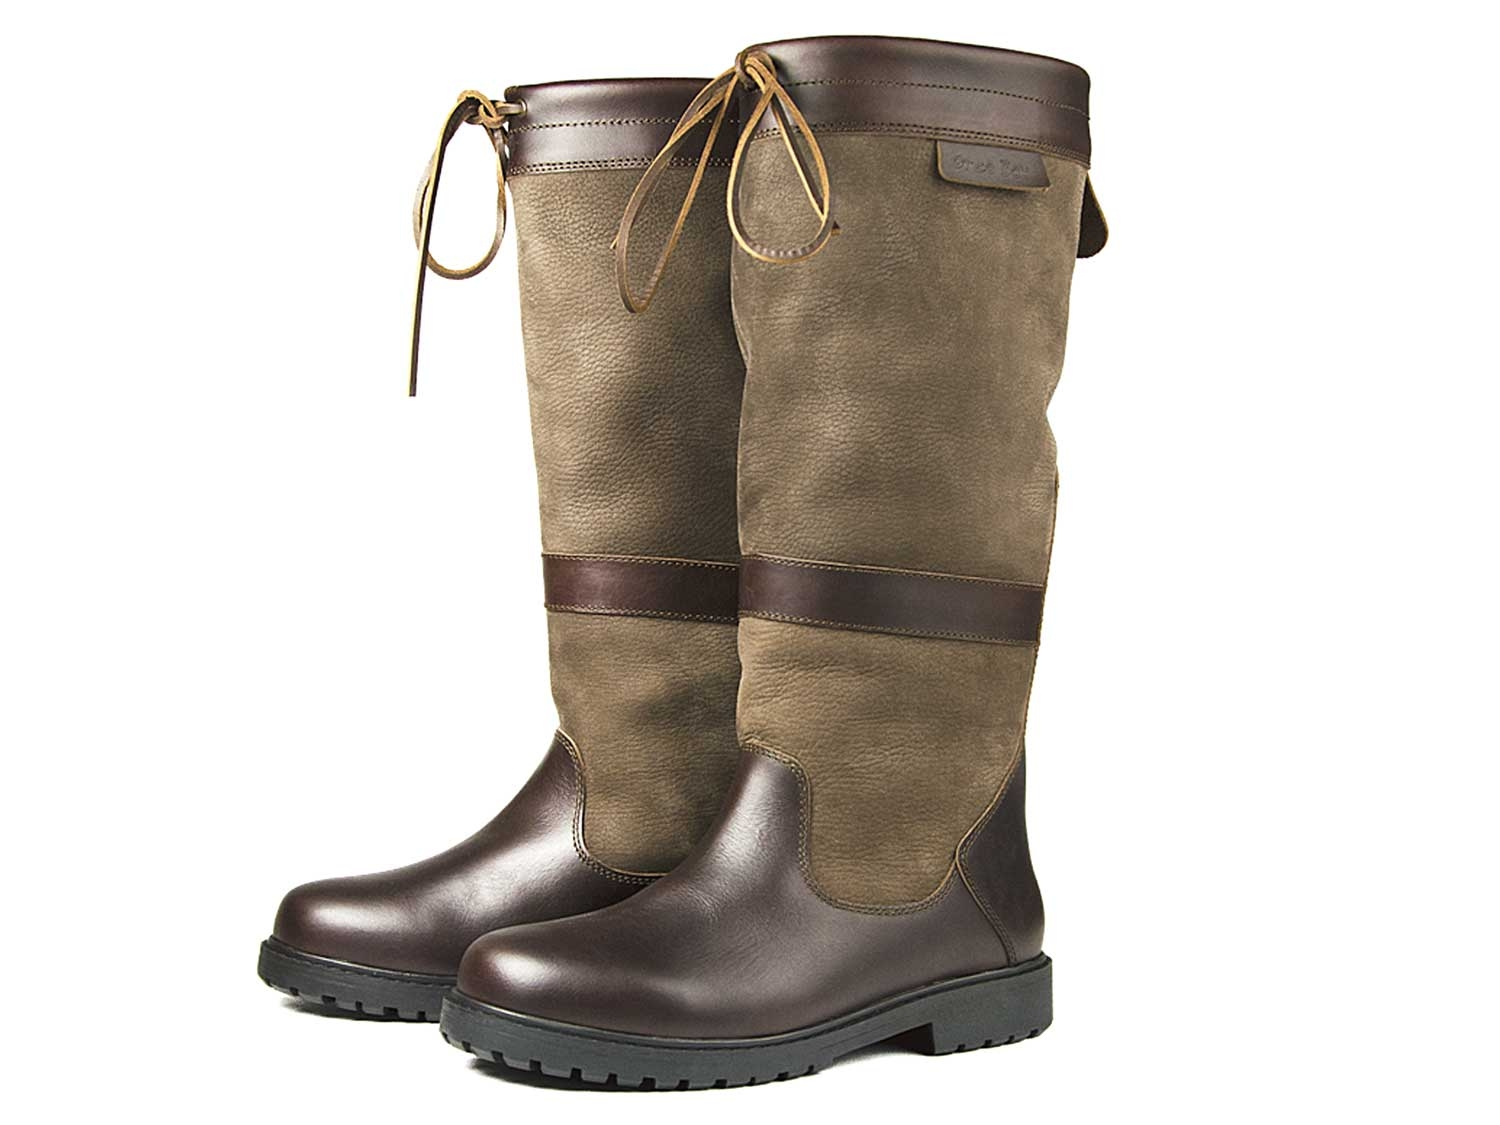 614285245a2f7 Mull Gents Waterproof Leather Boots